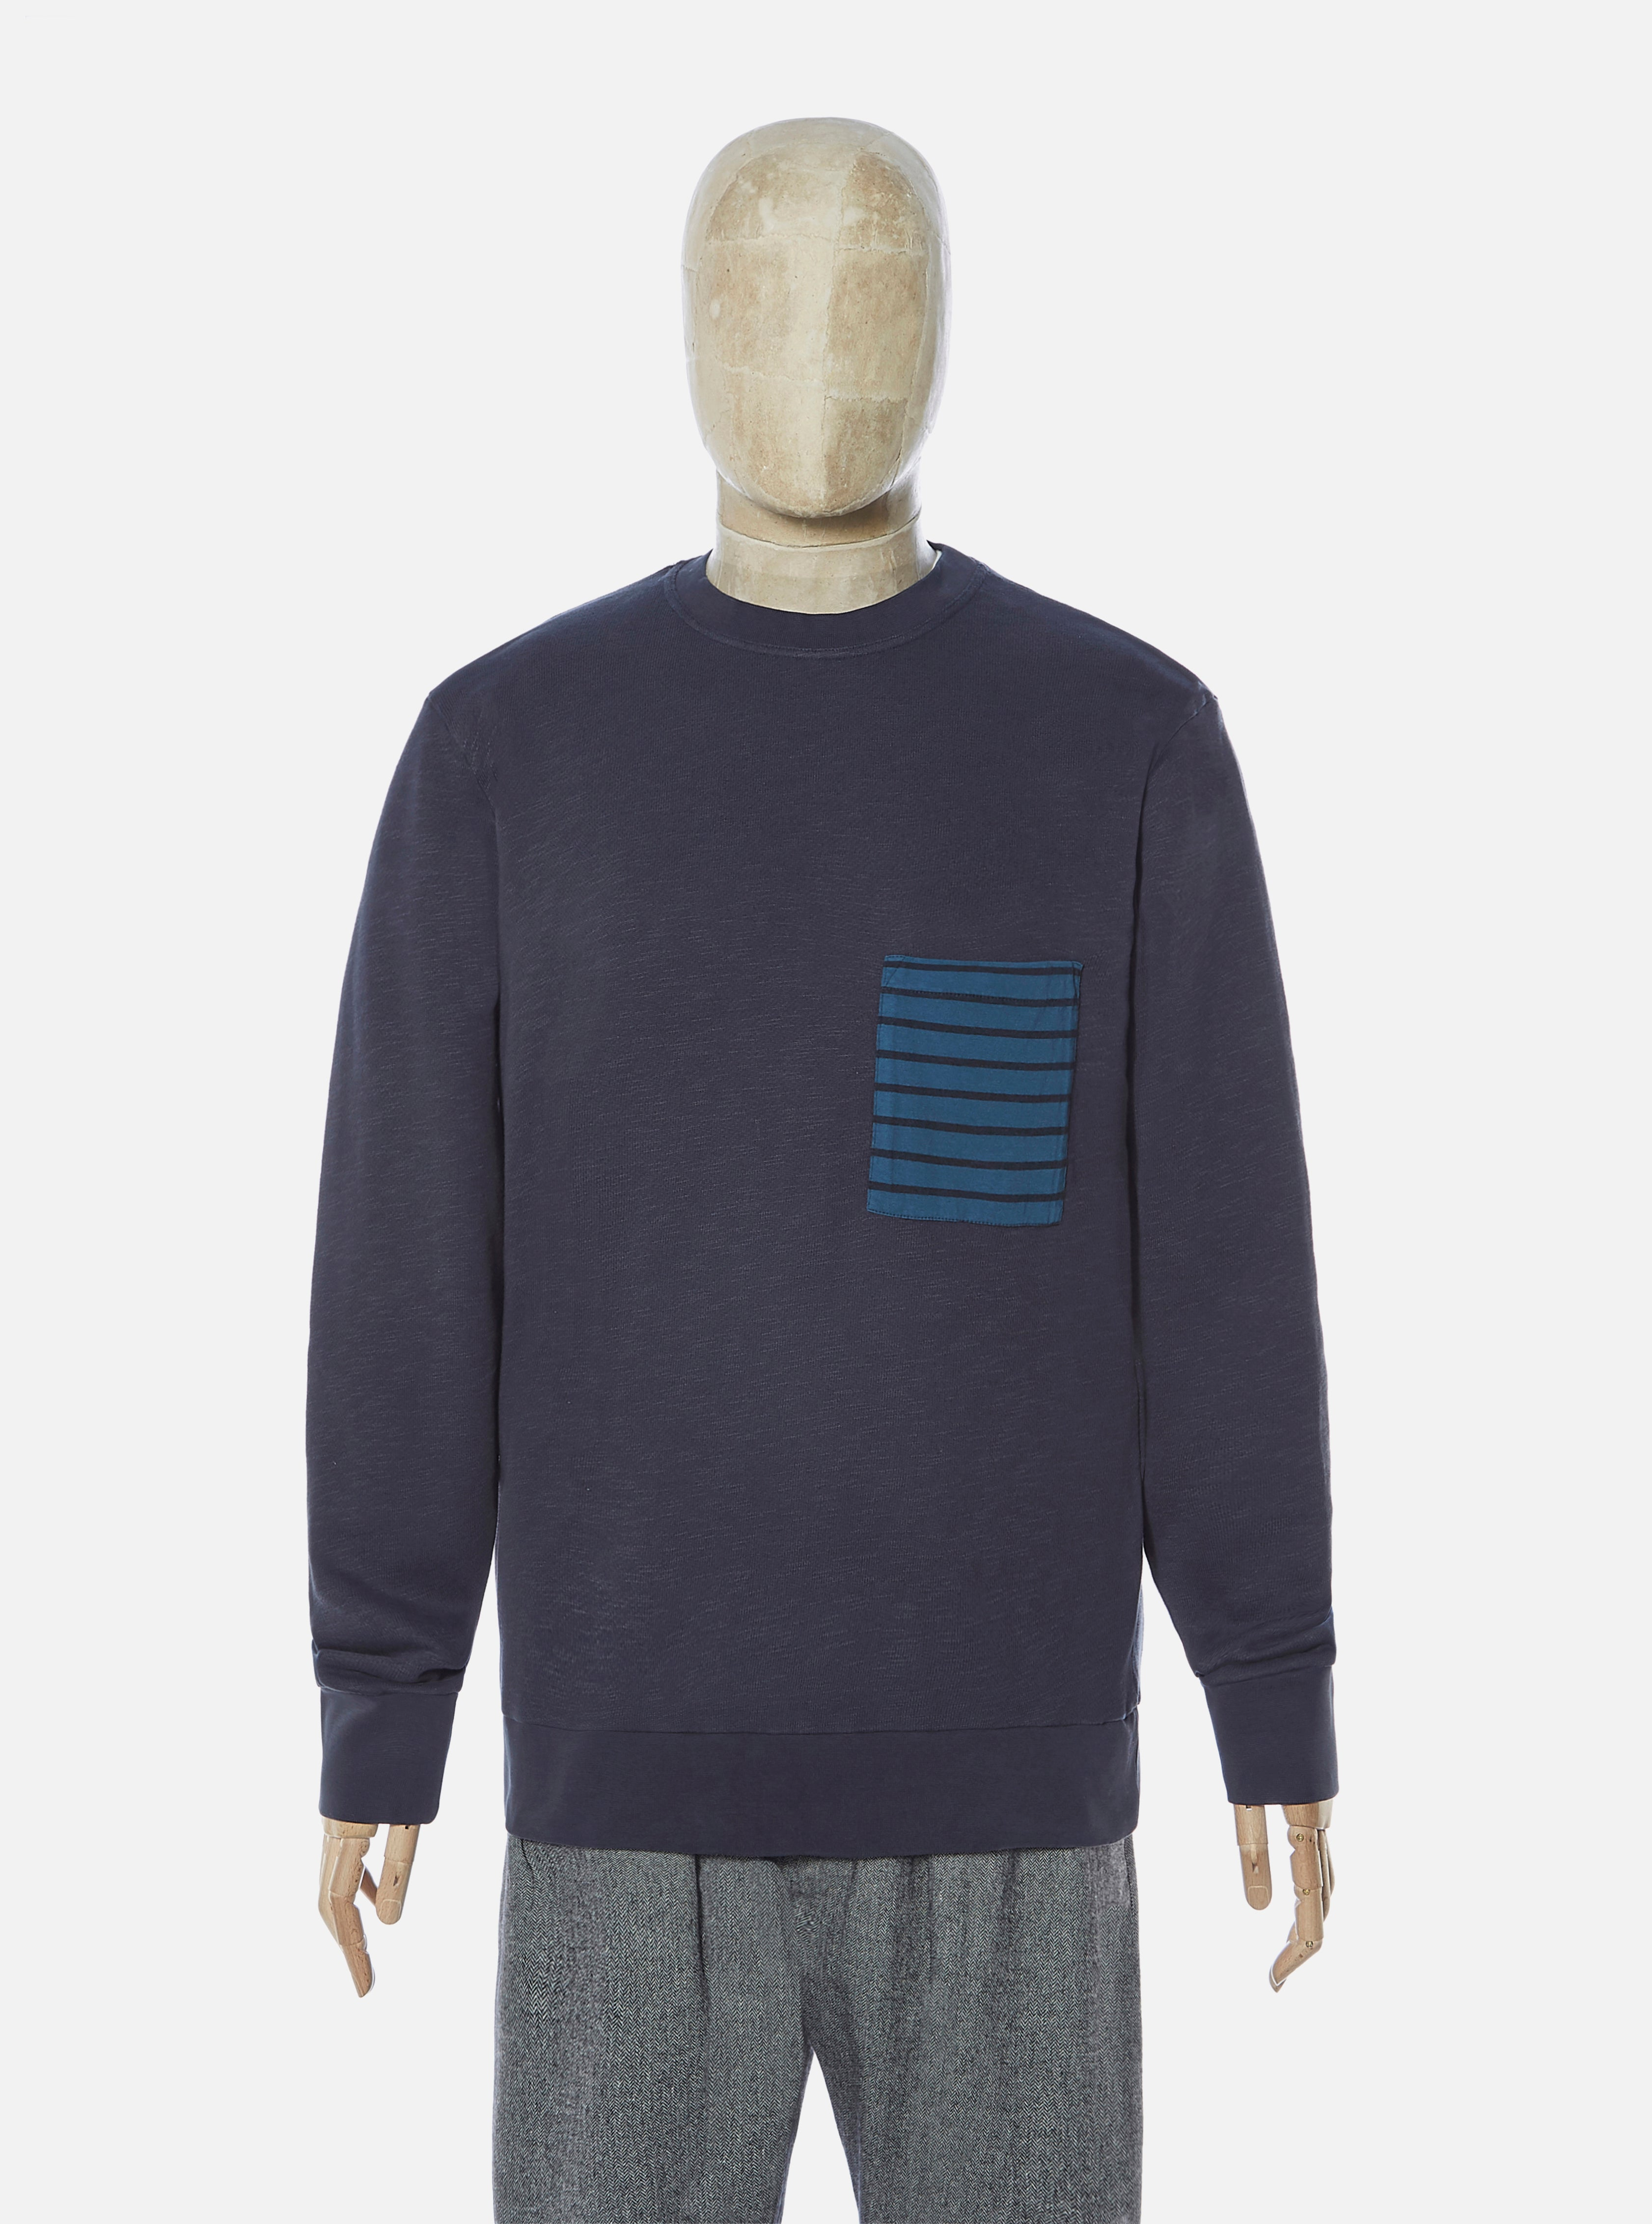 The Pilgrm x Universal Works Loose Pullover in Navy 21 Loopback Sweat